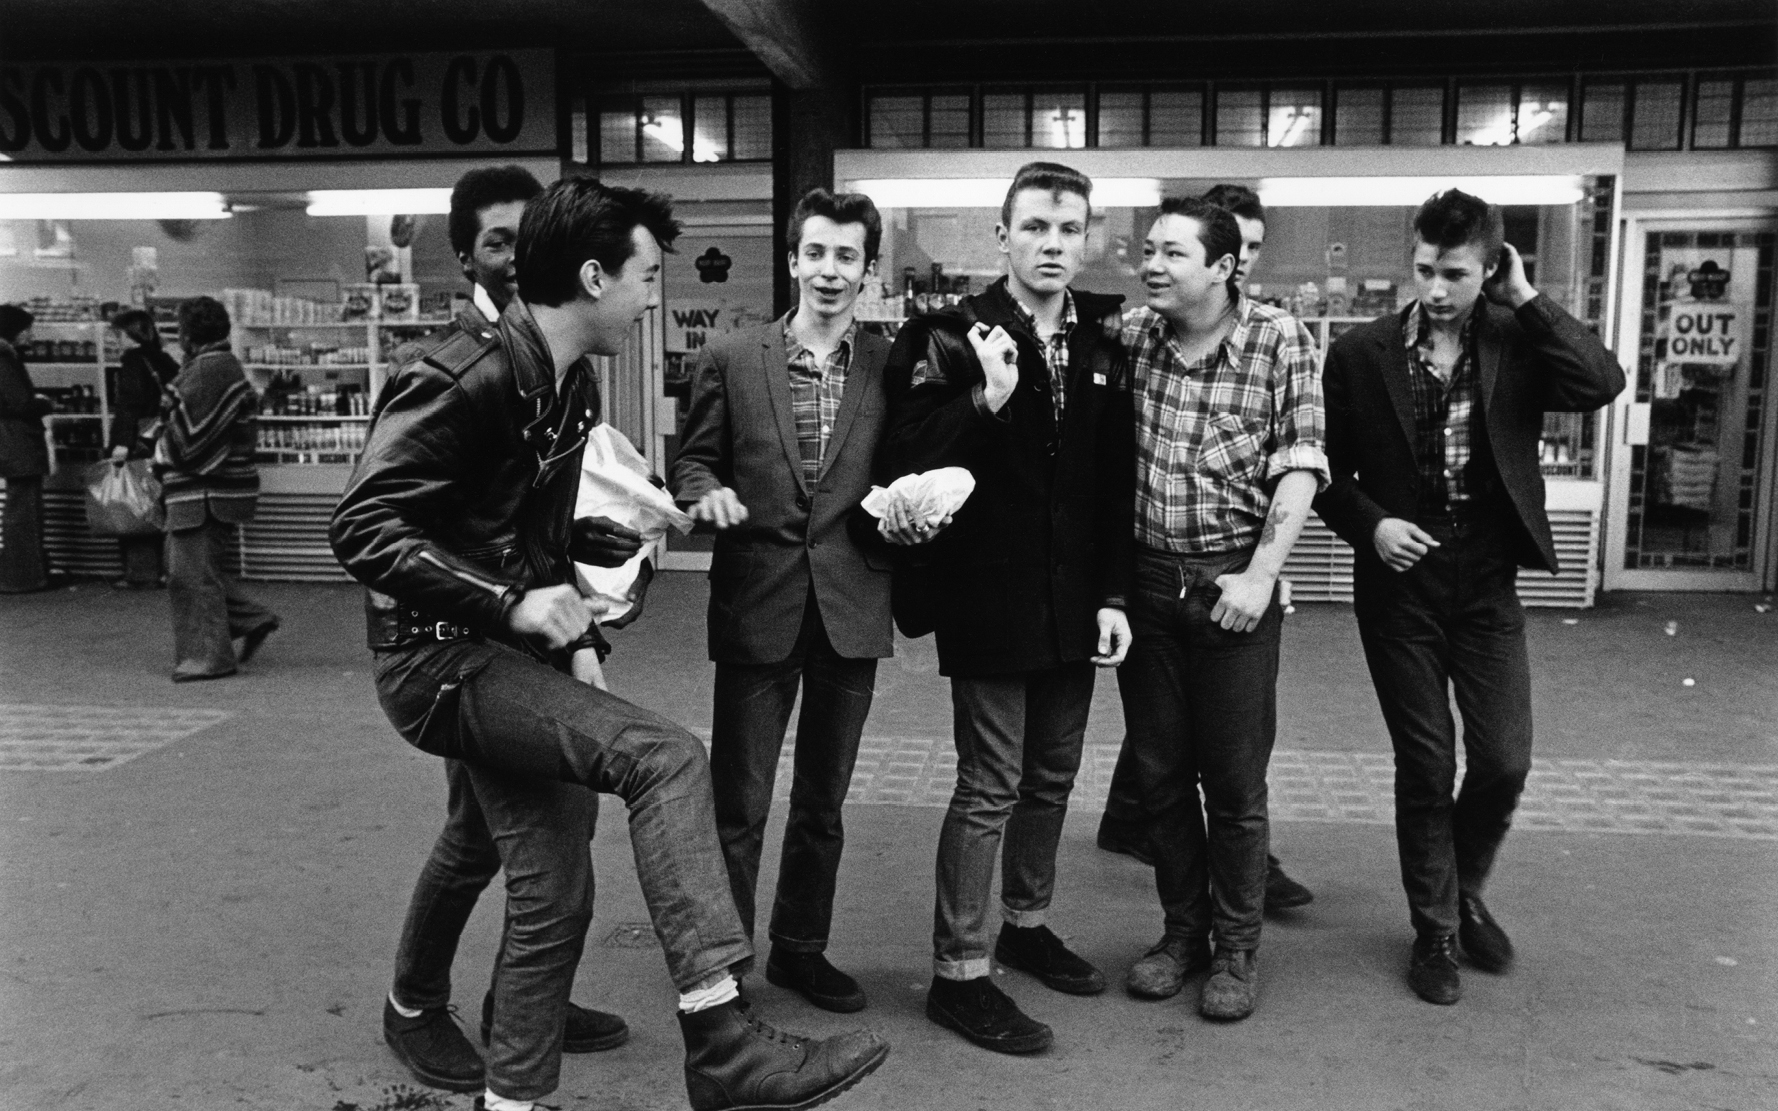 A group of Teddy boys / Rockers, London 1979. © Janette Beckman / PYMCA